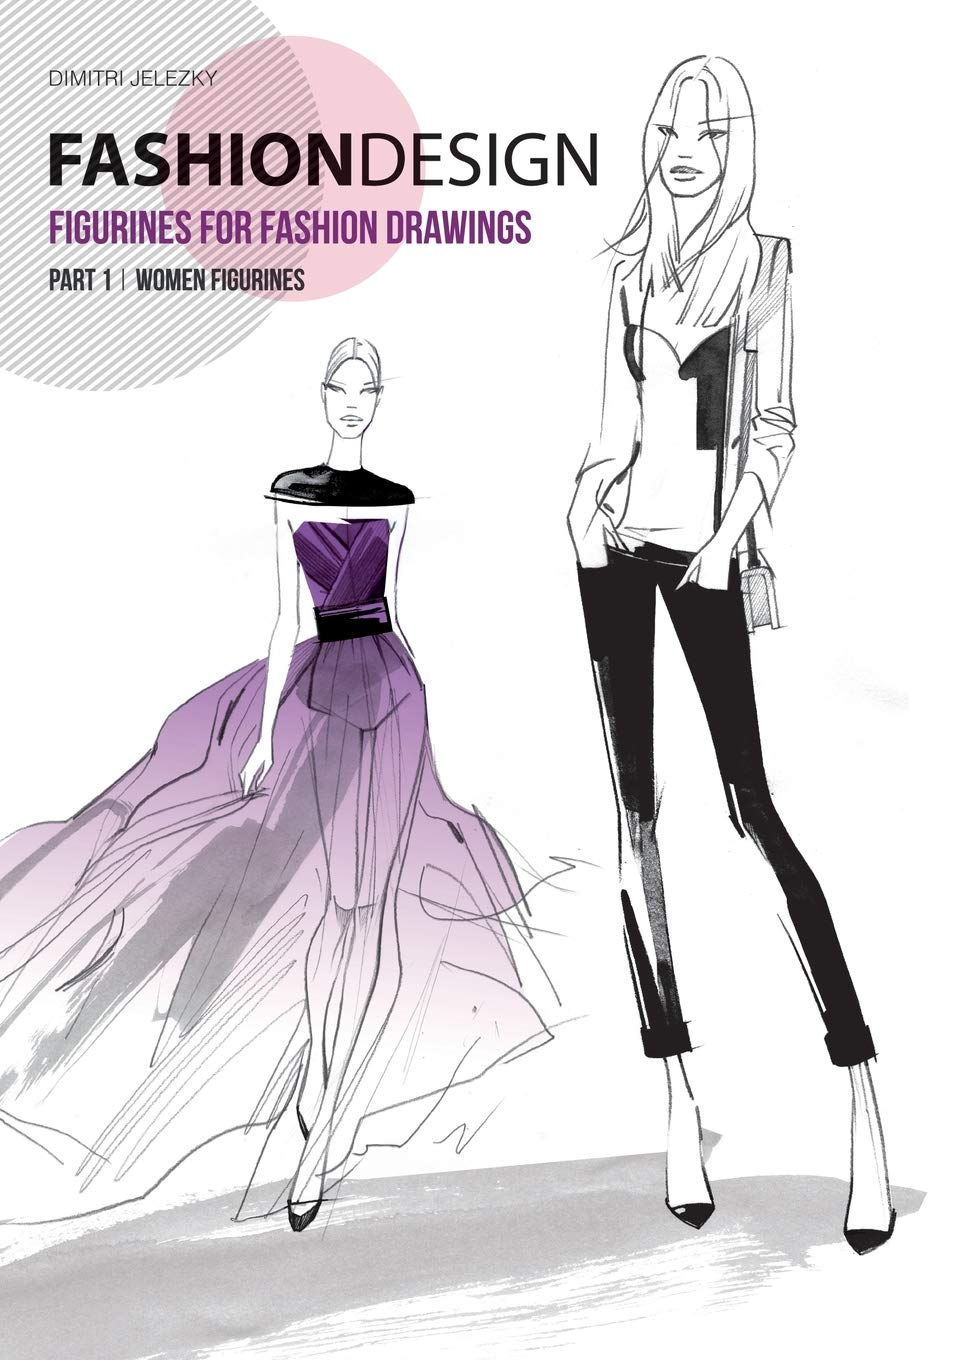 Fashion Design Figurines For Fashion Drawings Part 1 Women Figurines Jelezky Dimitri 9783945549049 Amazon Com Books